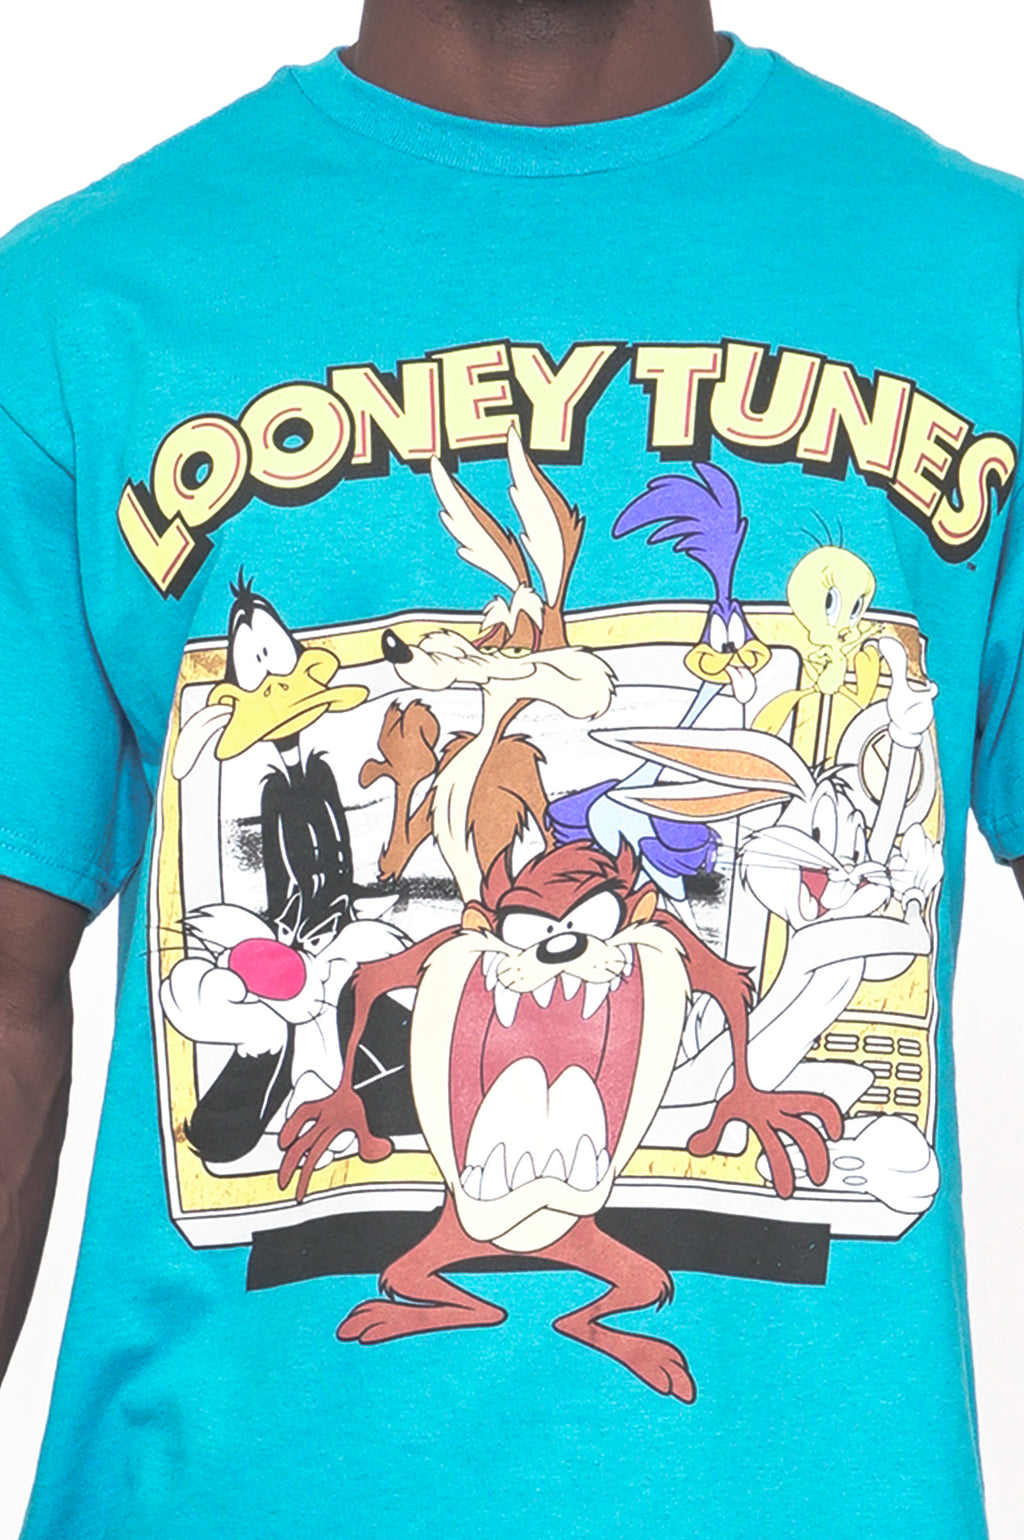 fbbc8c540 Aao Fashion Men Graphic Tee Looney Tunes Group